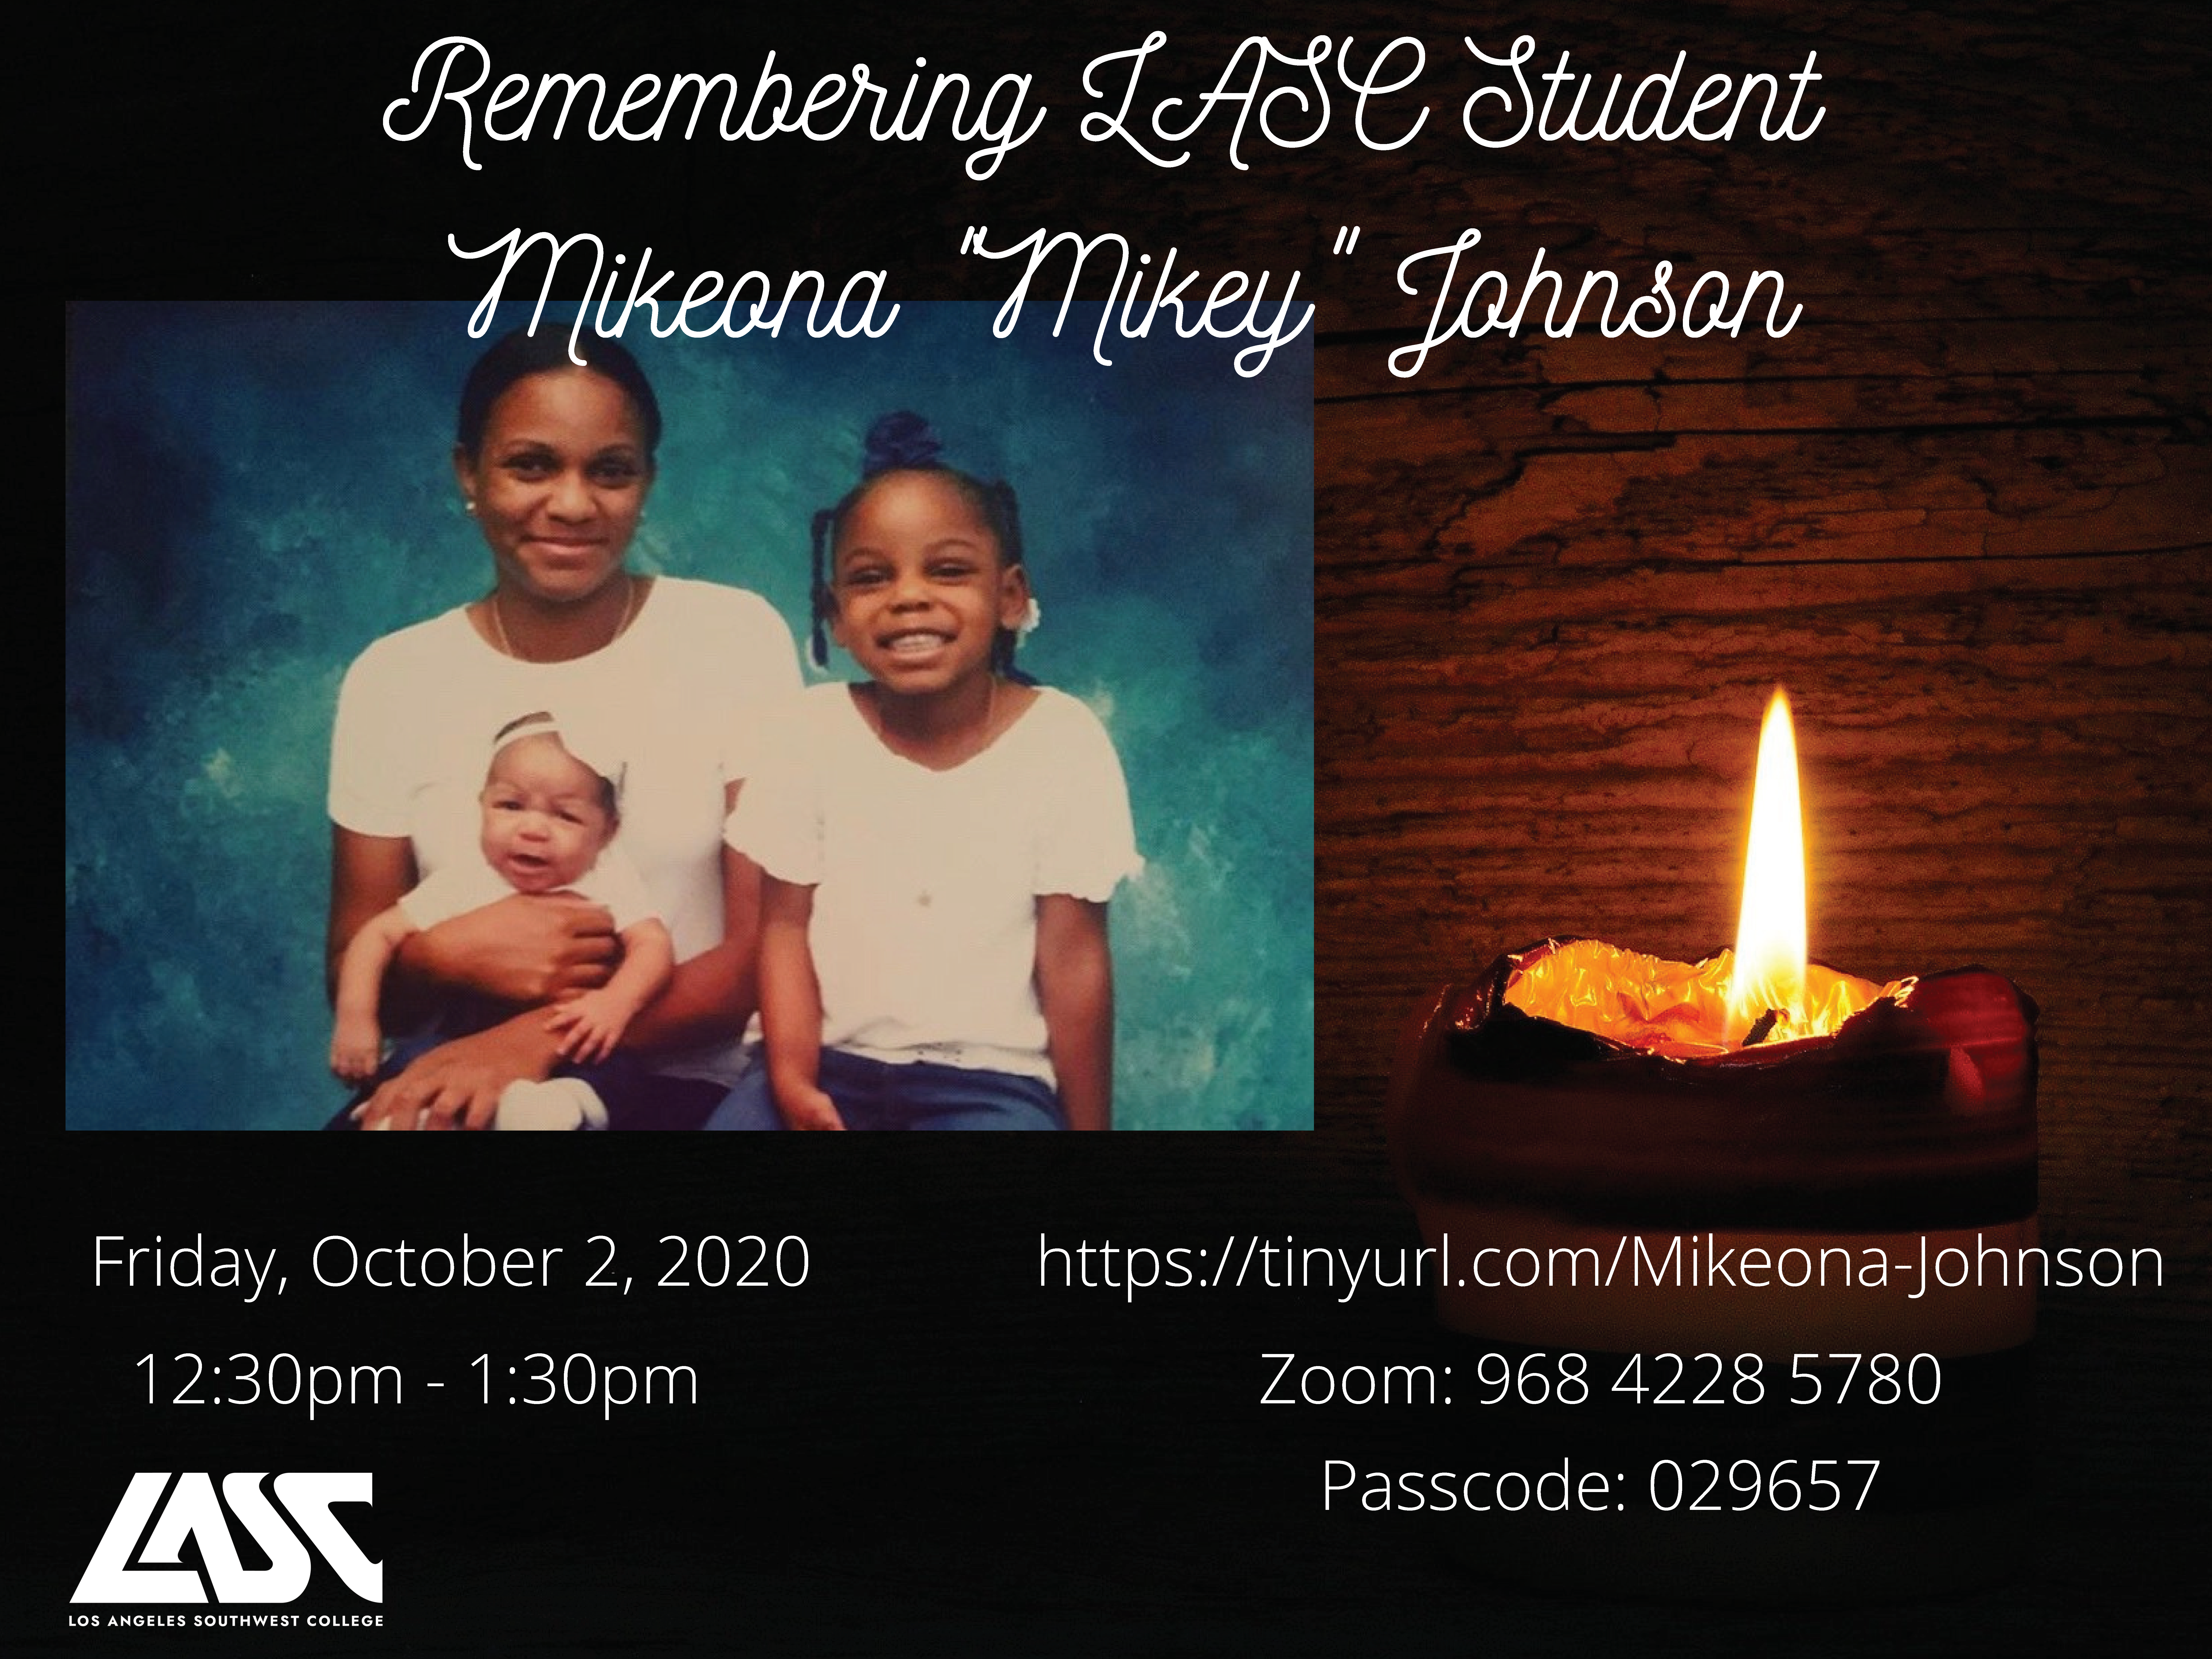 Memorial Event for LASC Student Flyer